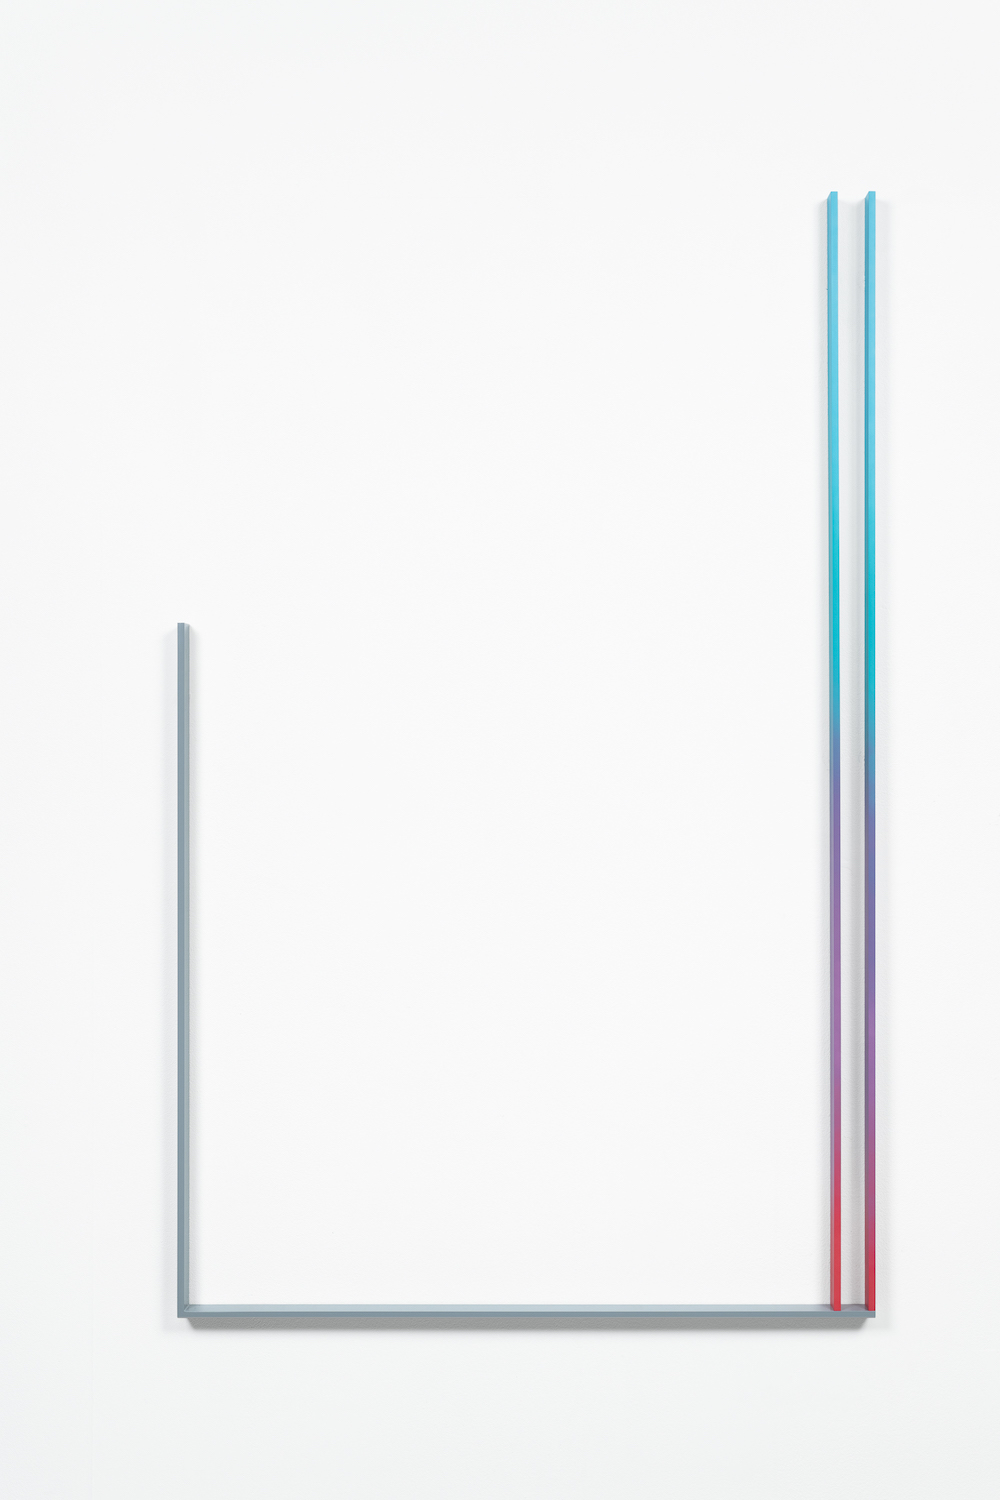 André Tehrani, Stock Gradient (Miaka), 2019, acrylic lacquer and acrylic polyurethane paint on water cut steel, 80,5 x 129,9 x 3,2 cm